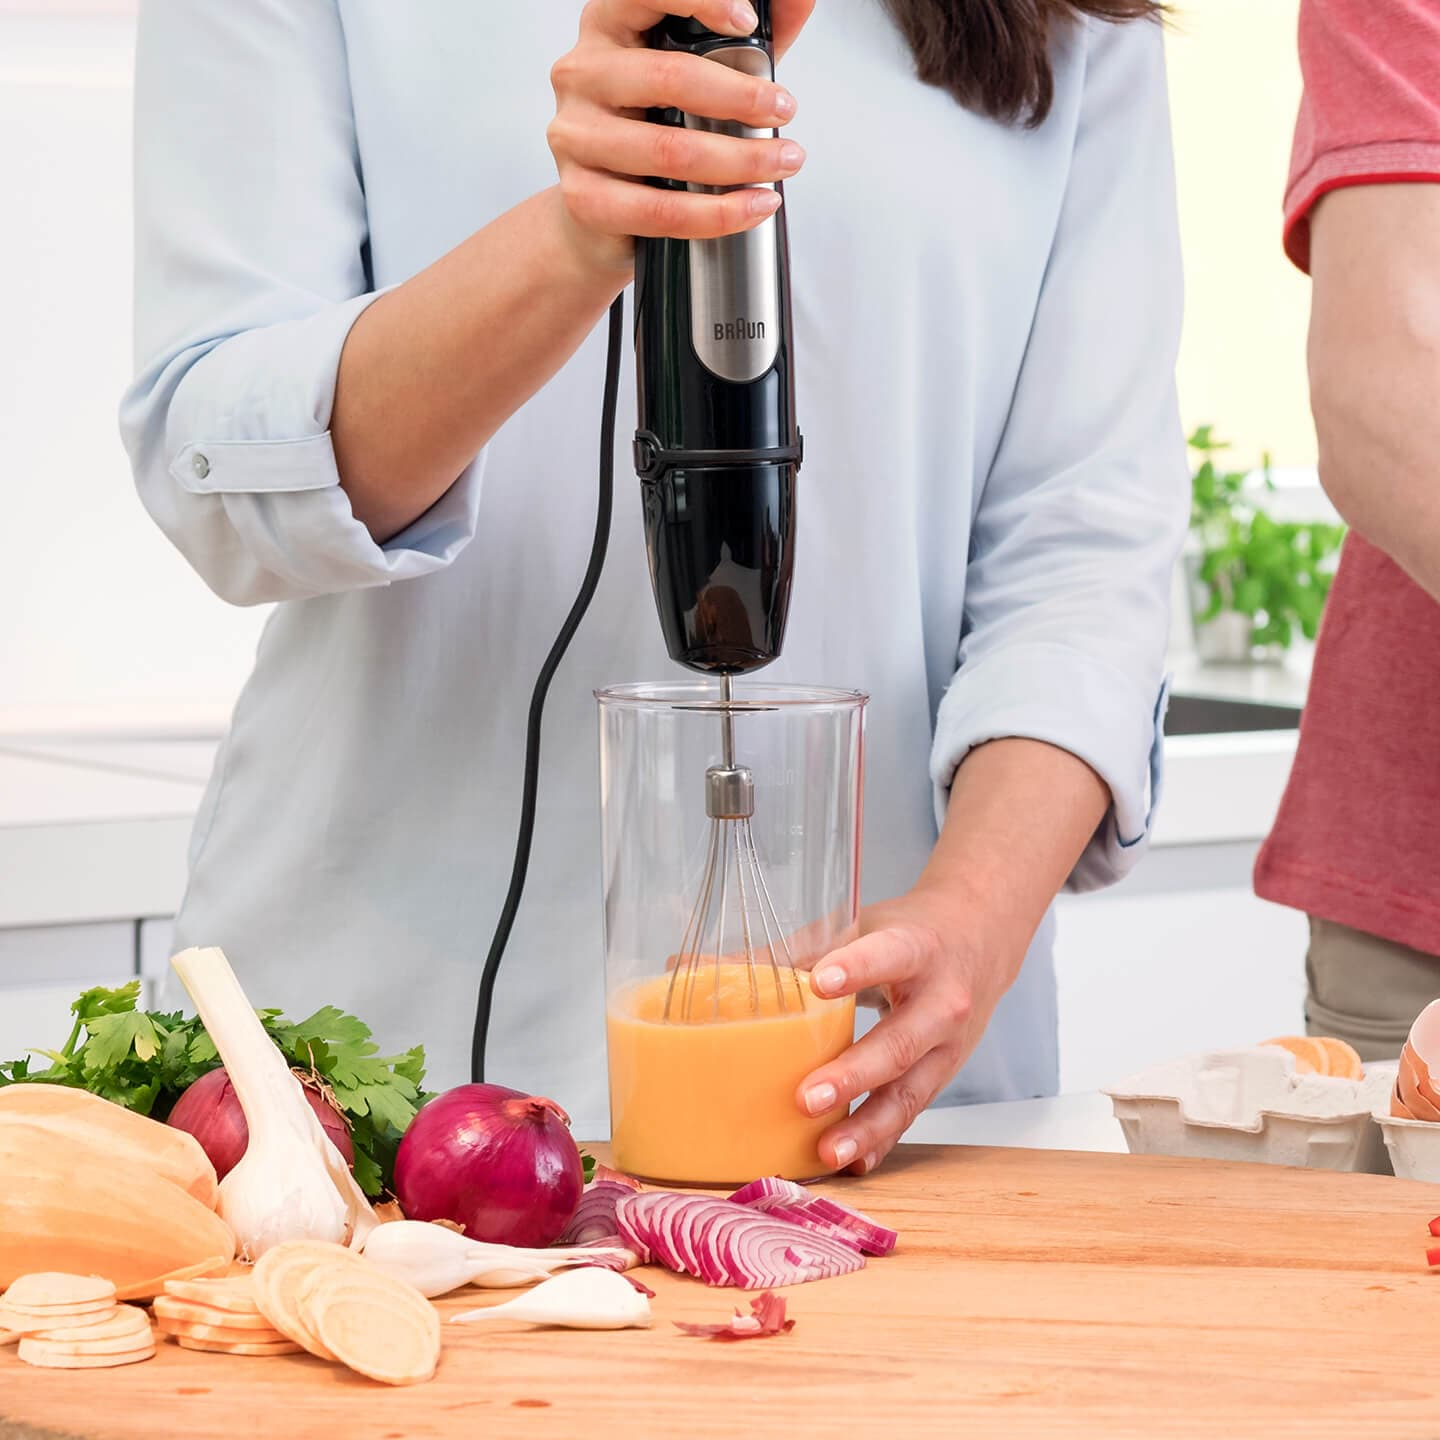 Braun MultiQuick 9 Hand blender Whisk accessory